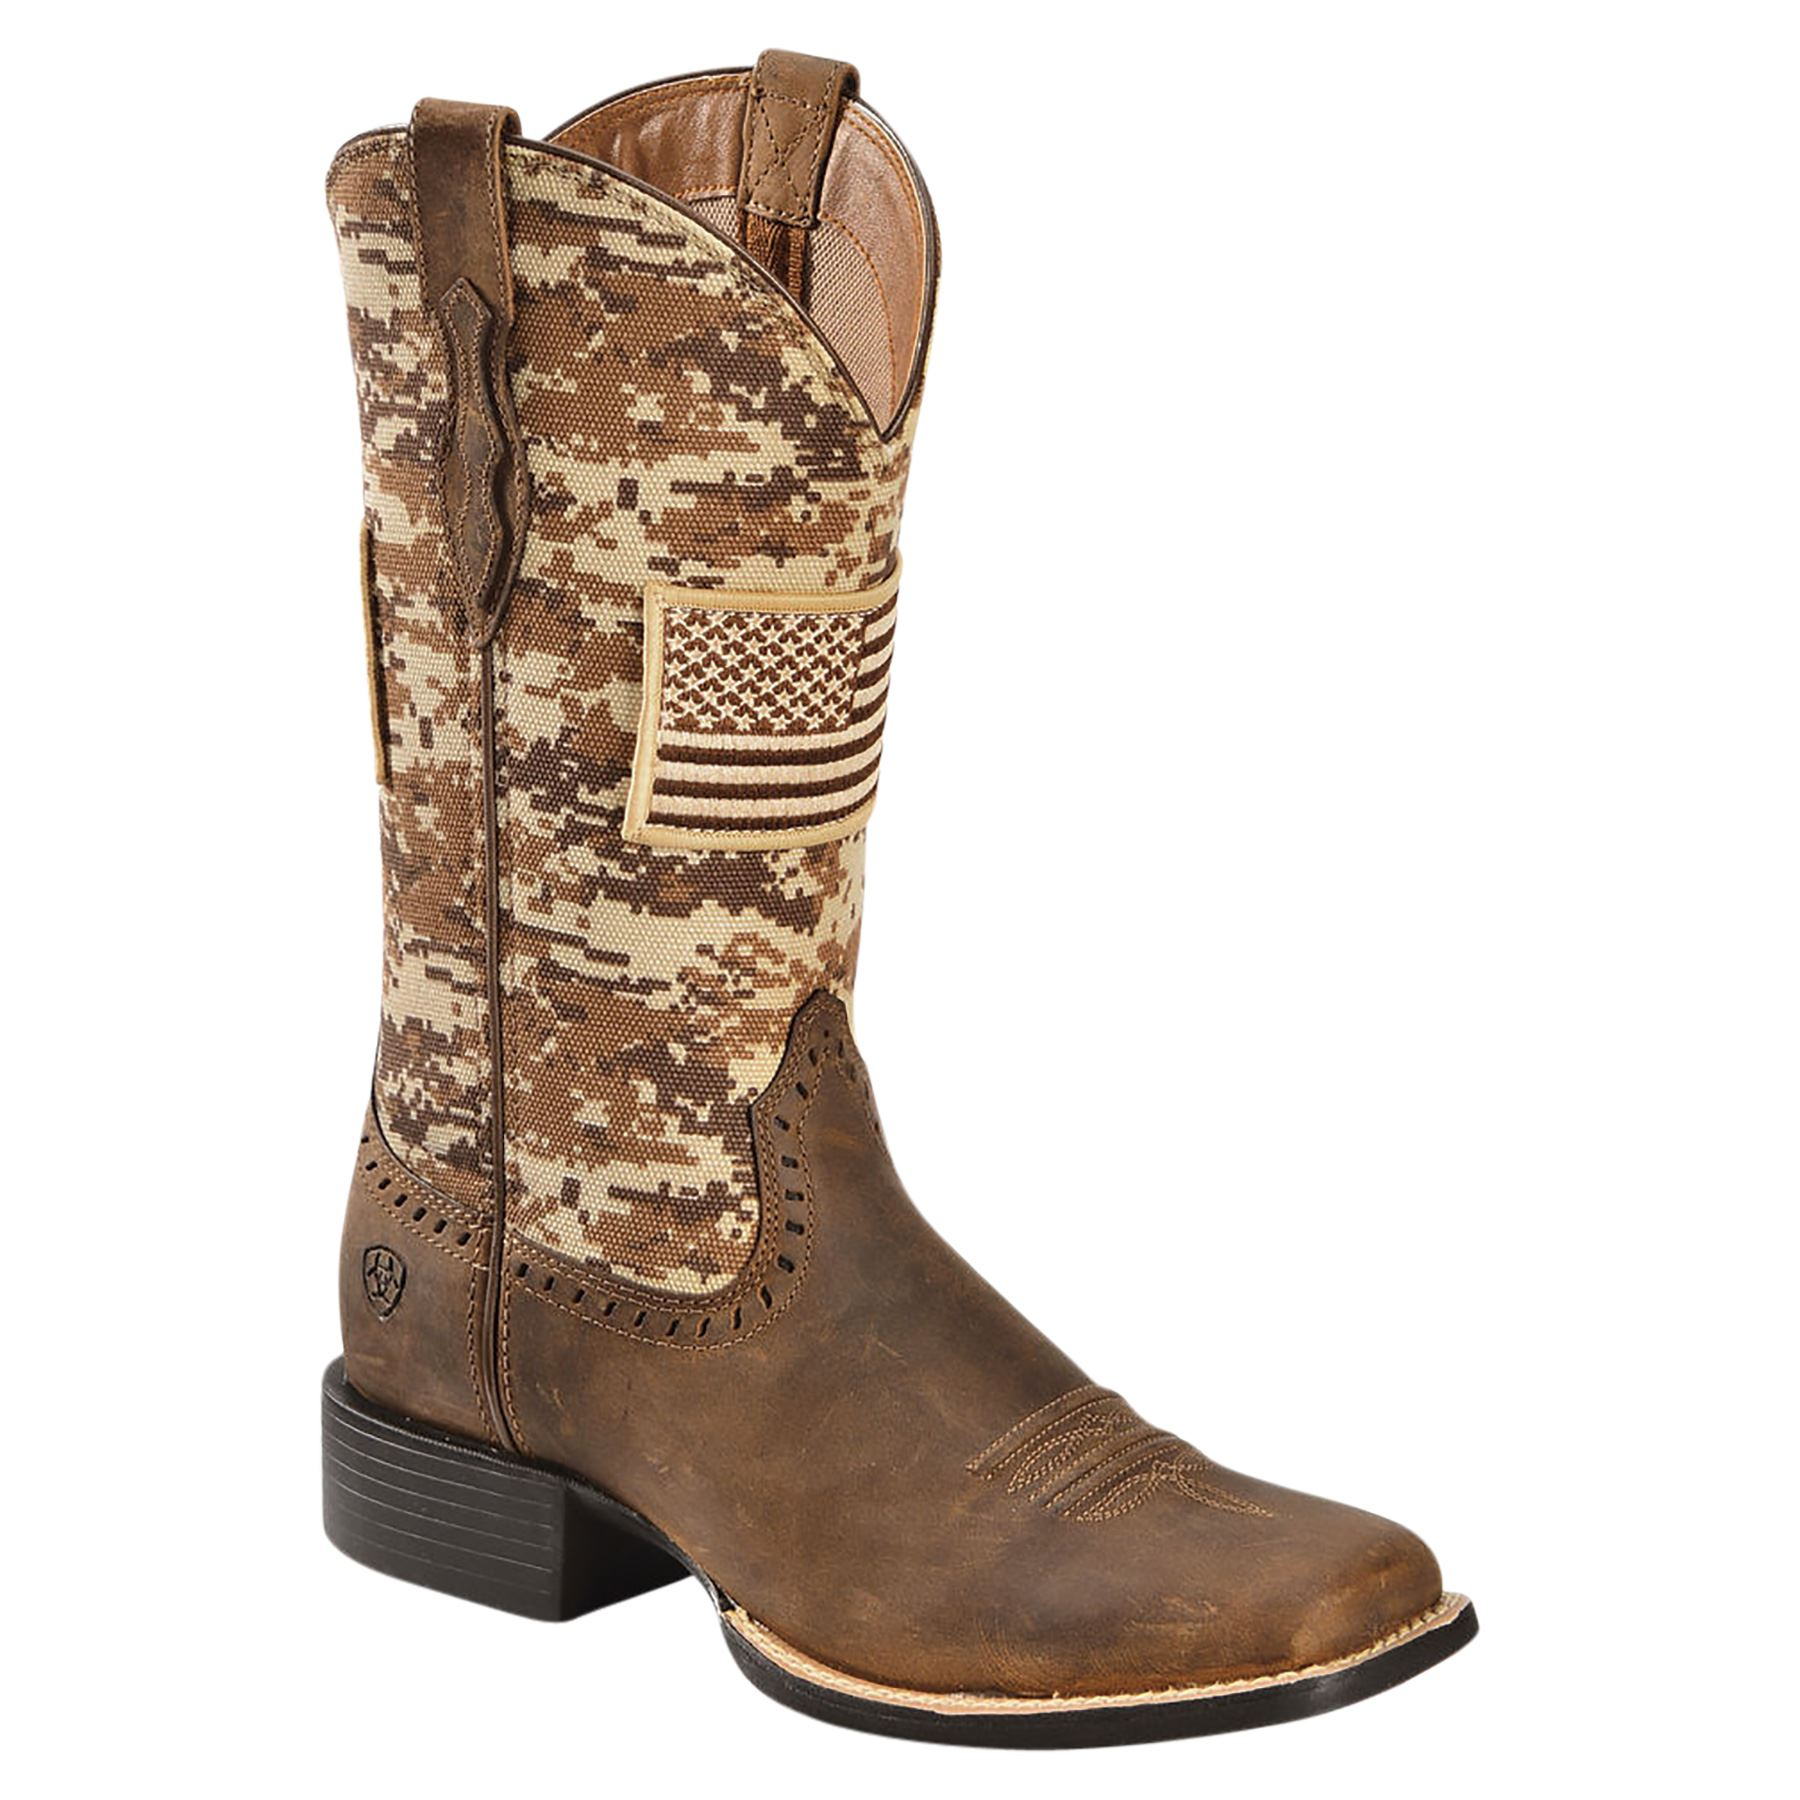 Ariat Womens Round Up Patriot Western Boots d53d213ad082